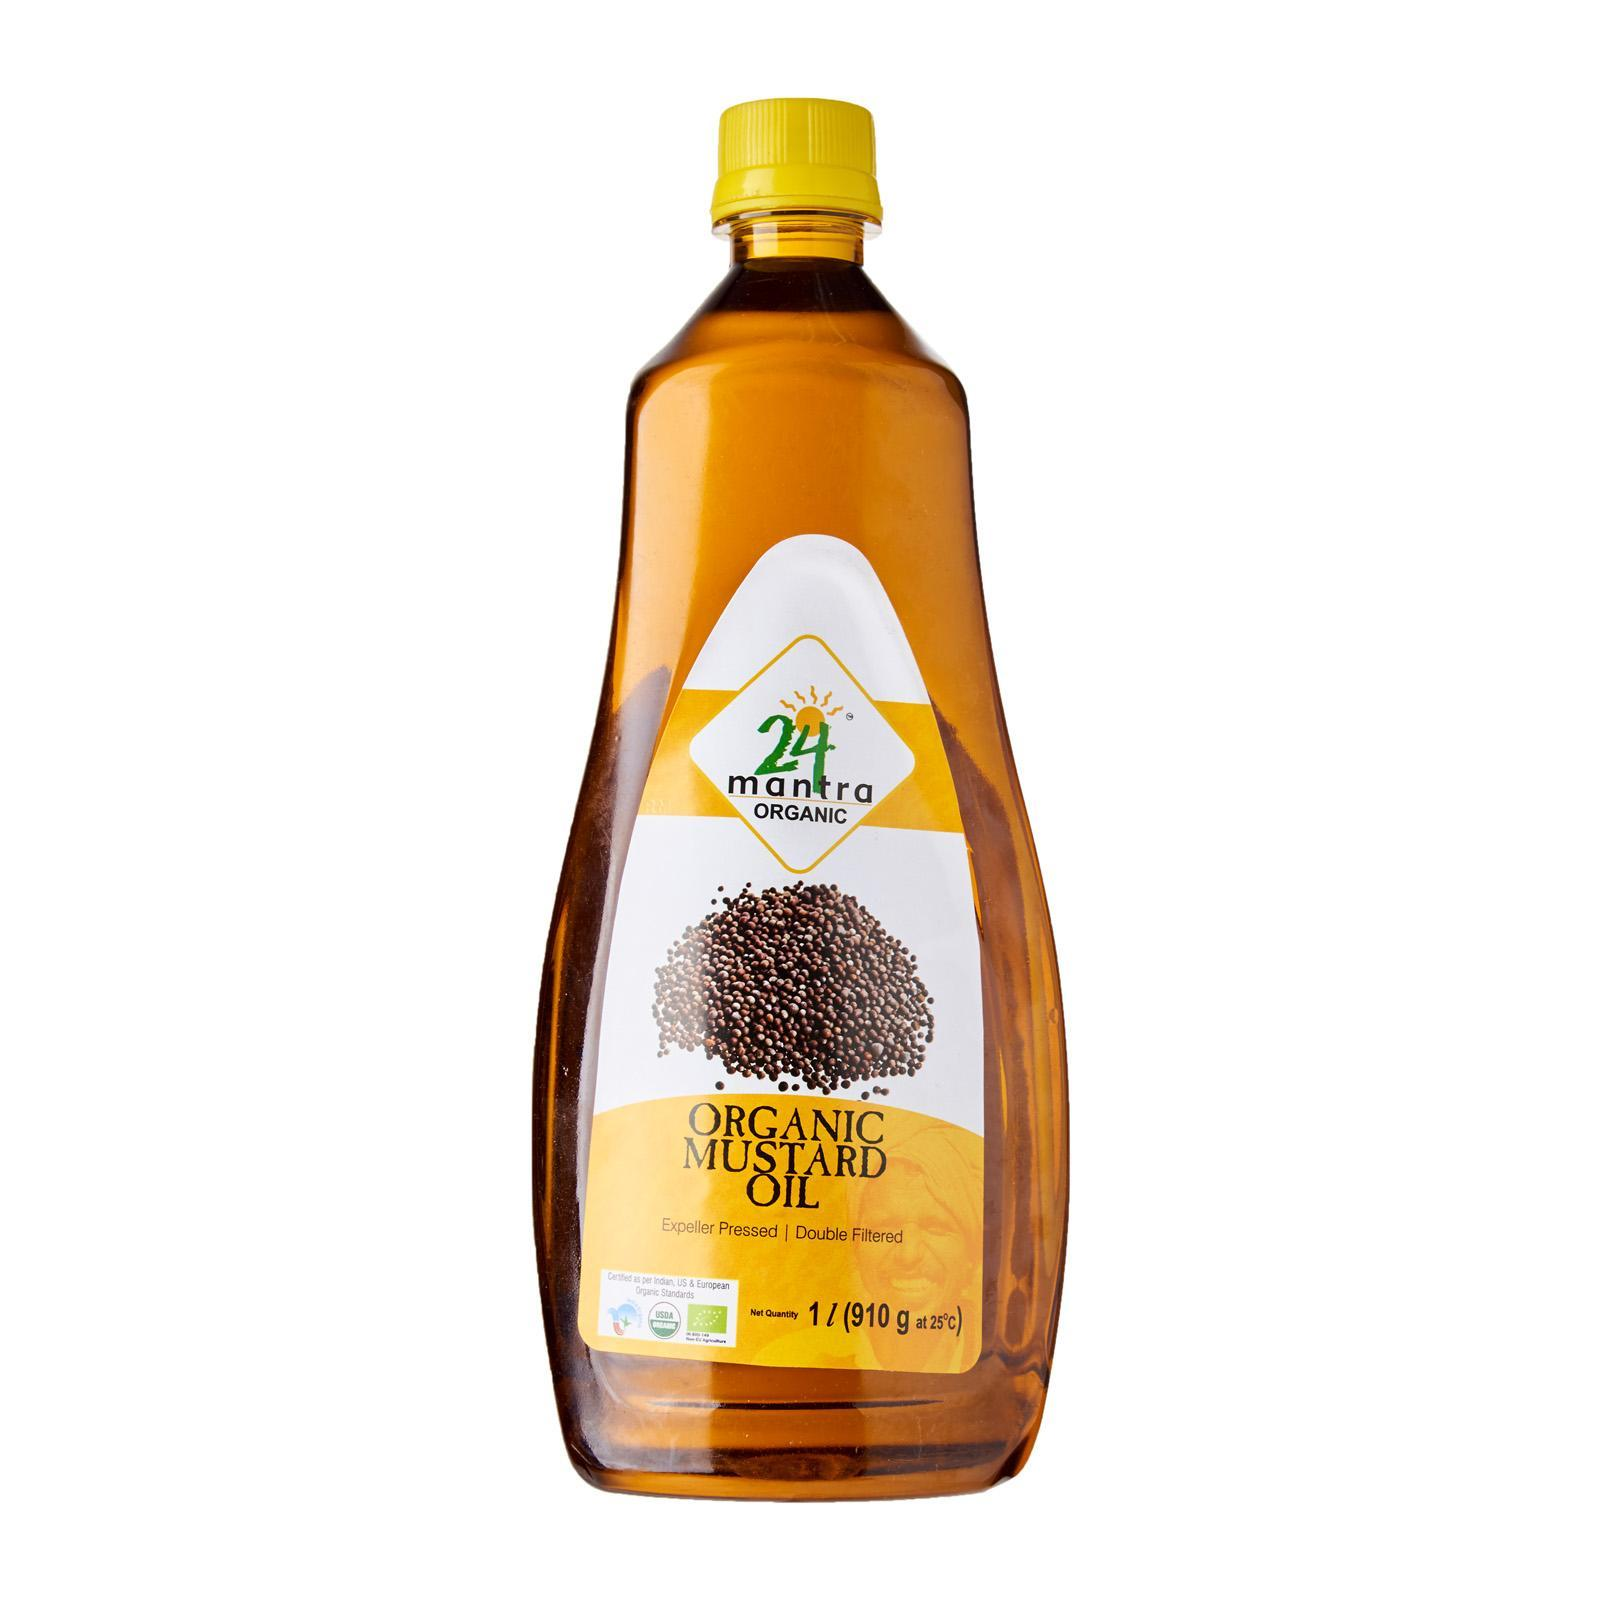 24 Mantra Organic Mustard Oil By Redmart.